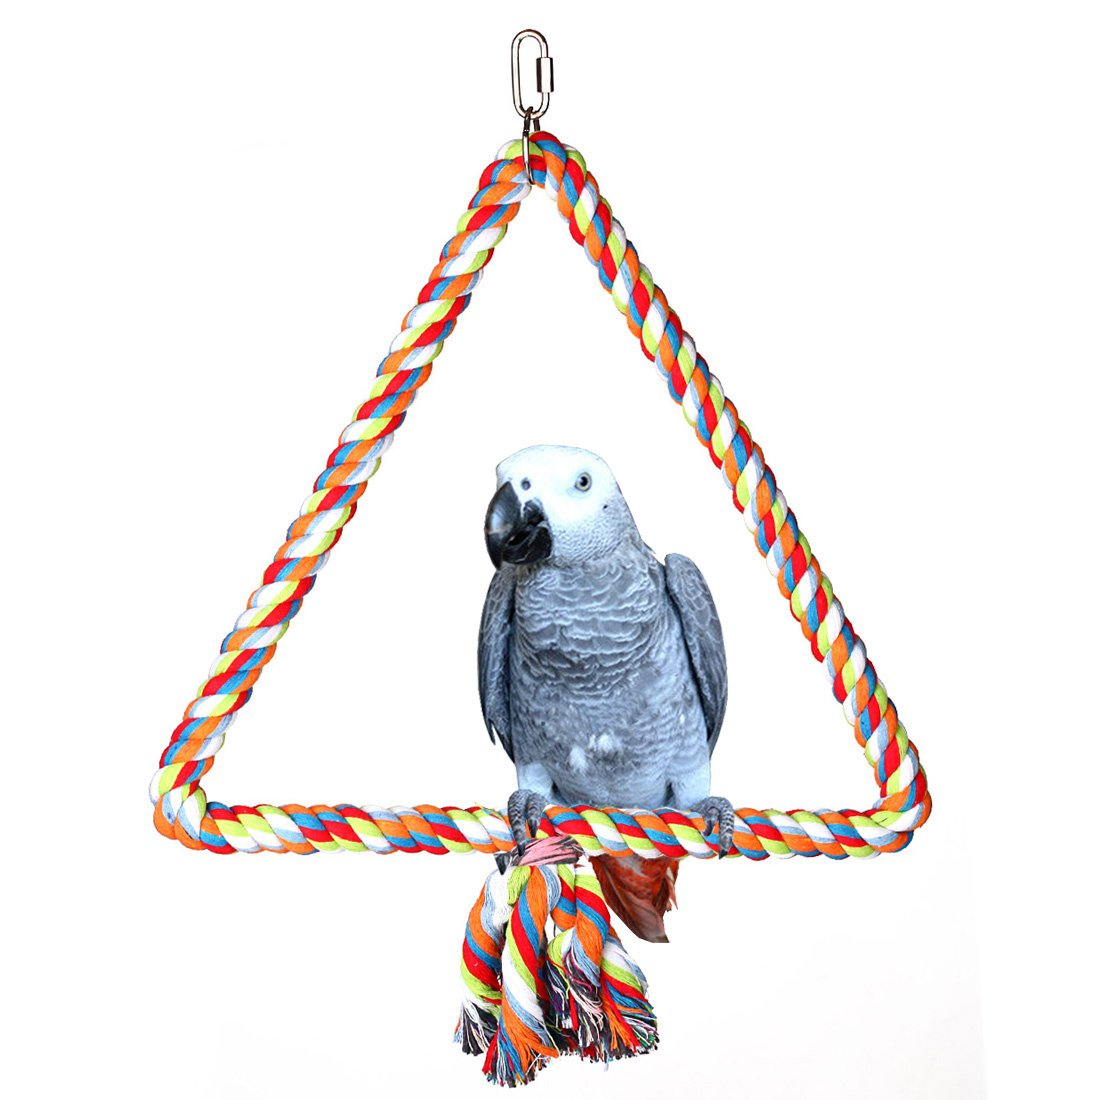 KINTOR Medium Triangle Rope Swing Bird Toy Parrot Cage Toys Cages Conure African Grey by KINTOR